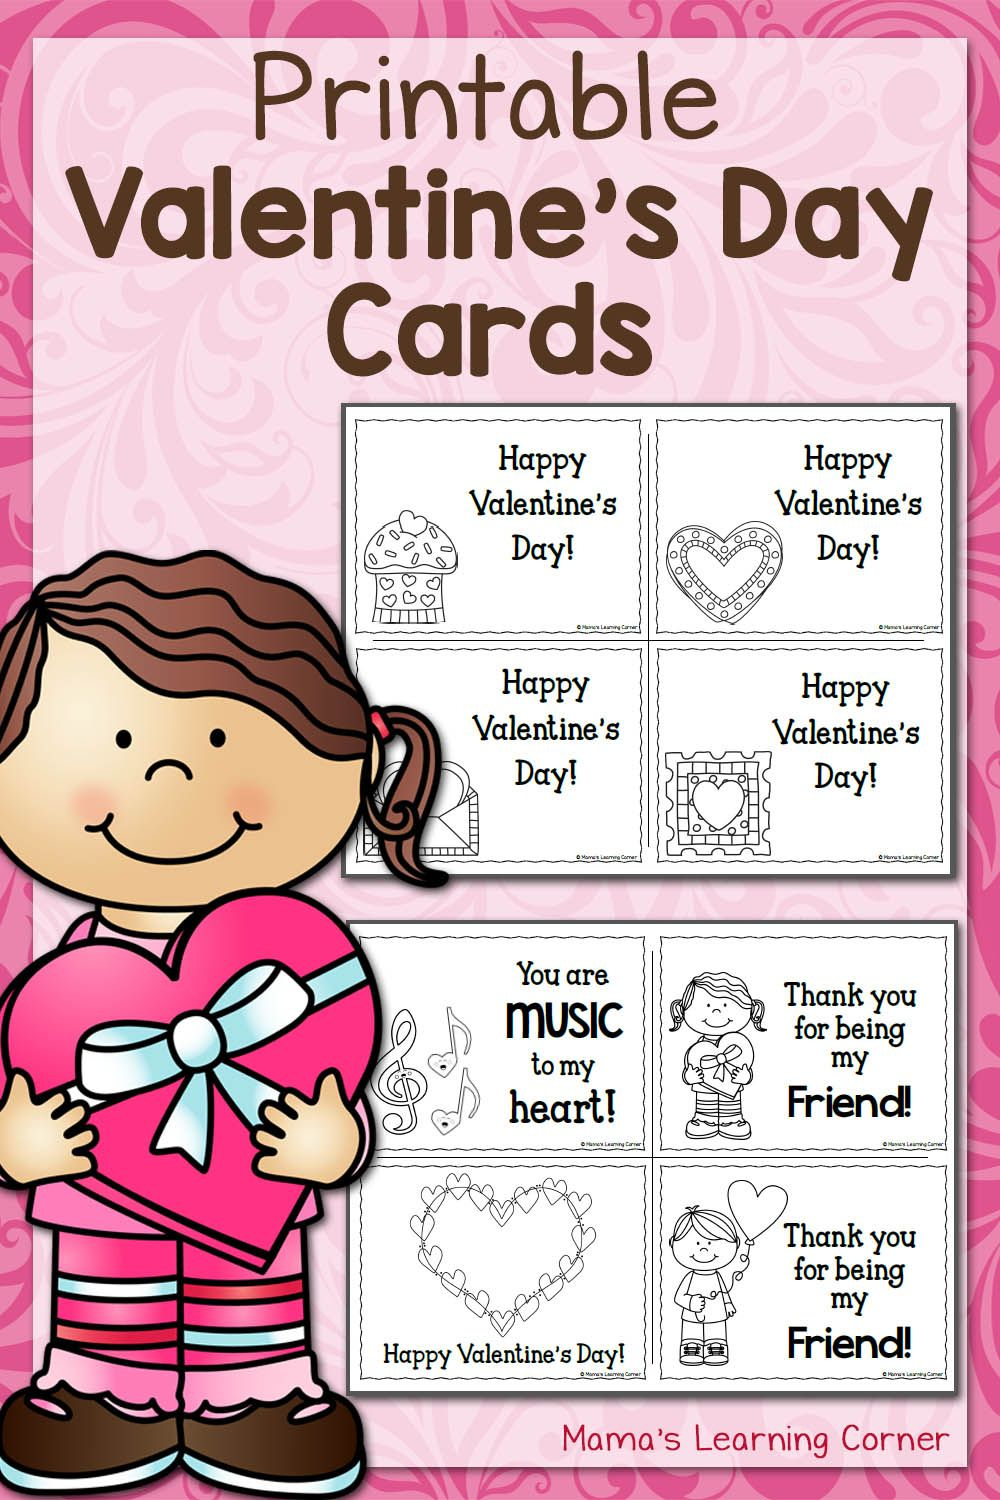 Printable Valentine's Day Cards | Best Of Mama's Learning Corner - Free Printable Valentines Day Cards Kids